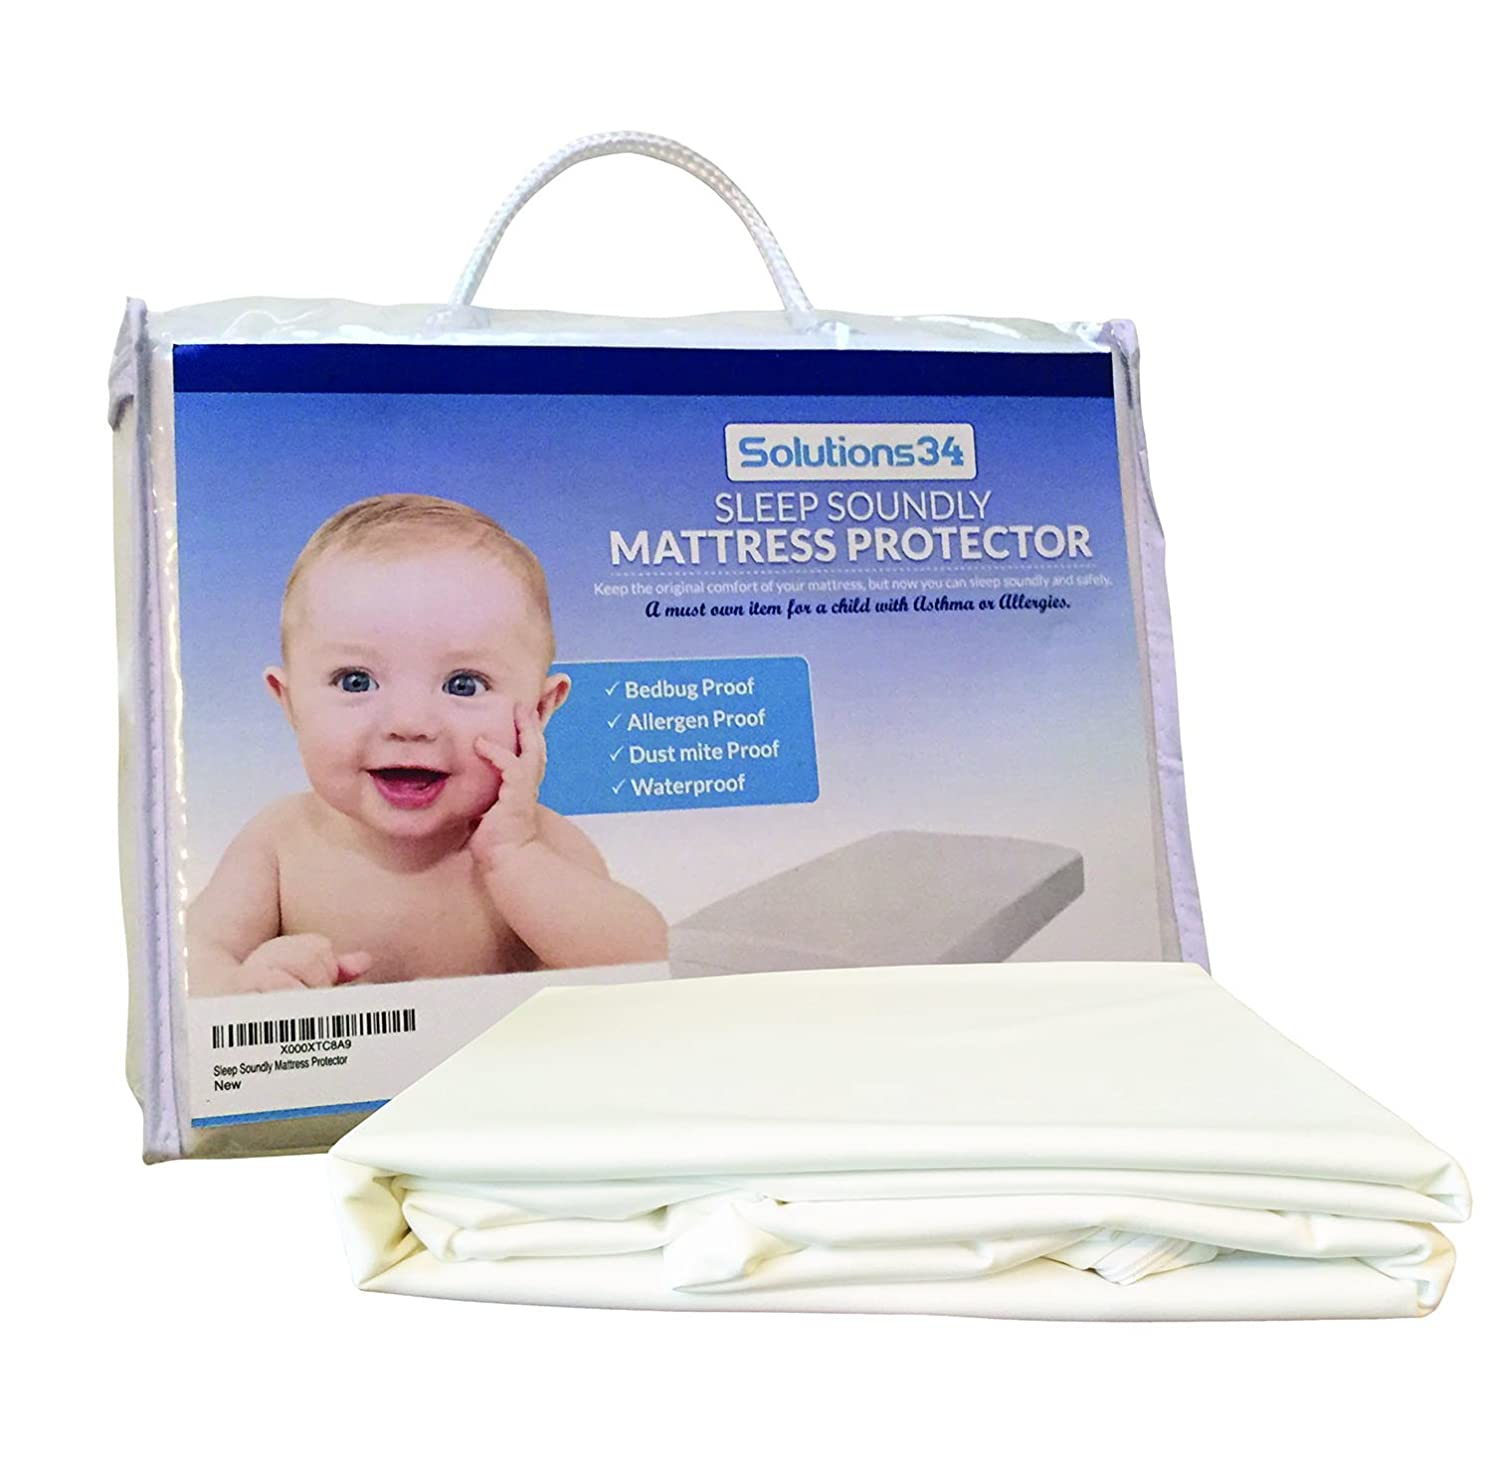 Best Crib Mattress Protector - Zippered Encasement Will Keep Your Baby Safe From Bed Bugs, Dust Mites, and Allergens. This Cover is 100% Waterproof. Necessity for any Child with an Allergy Problem. Solutions 34